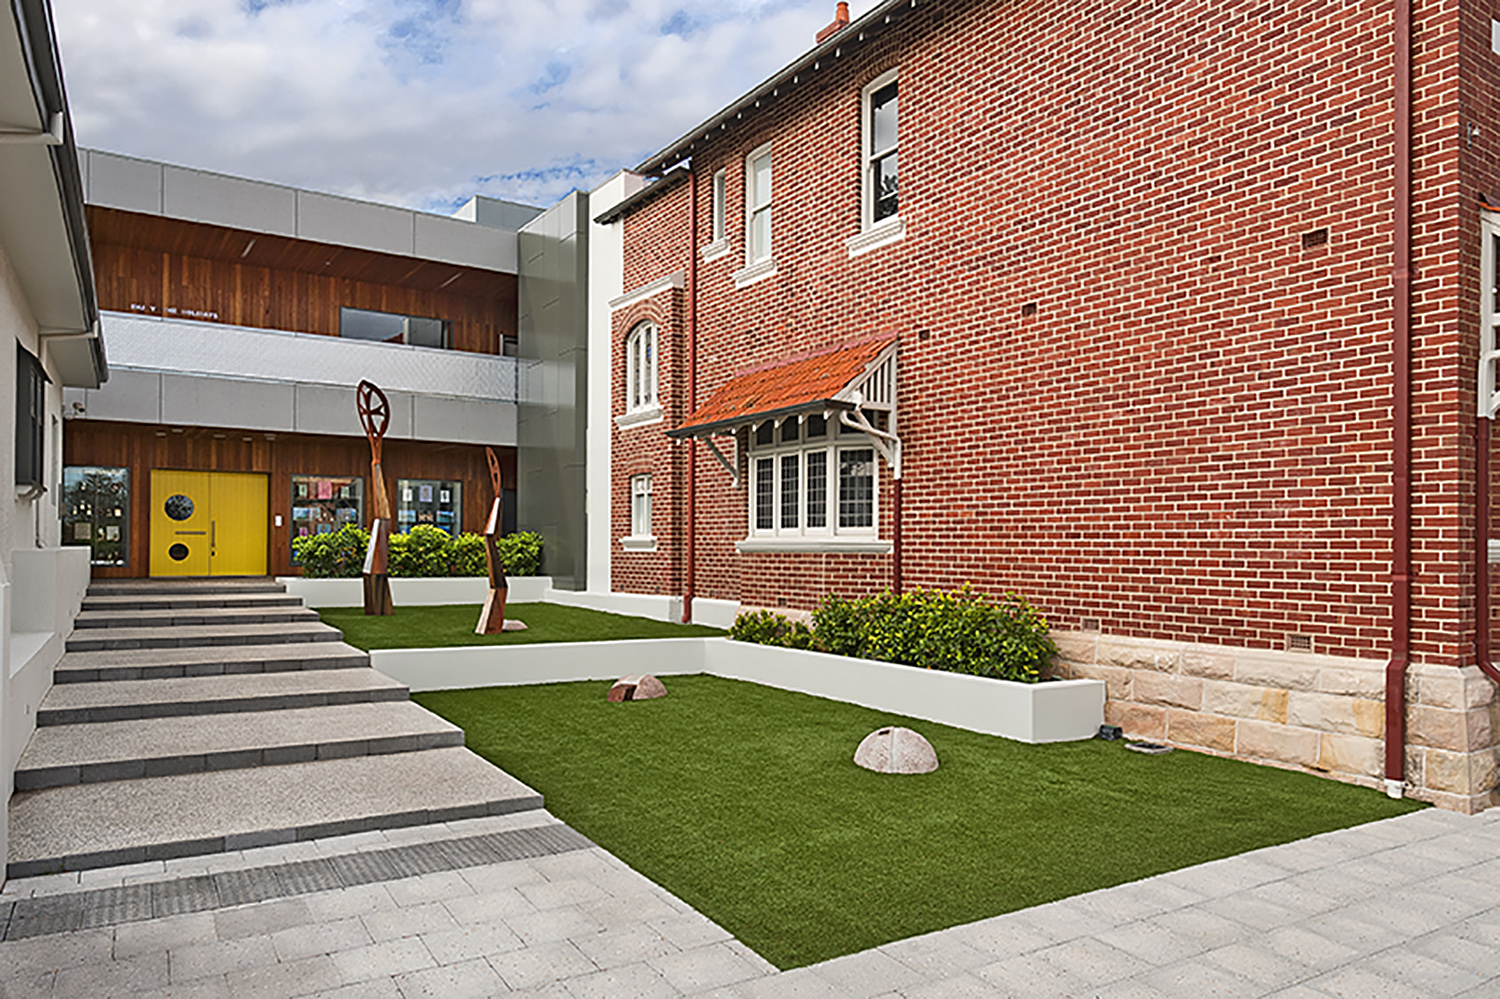 Perth-College-Early-Years-Mount-Lawley-Perth-Architecture1.jpg